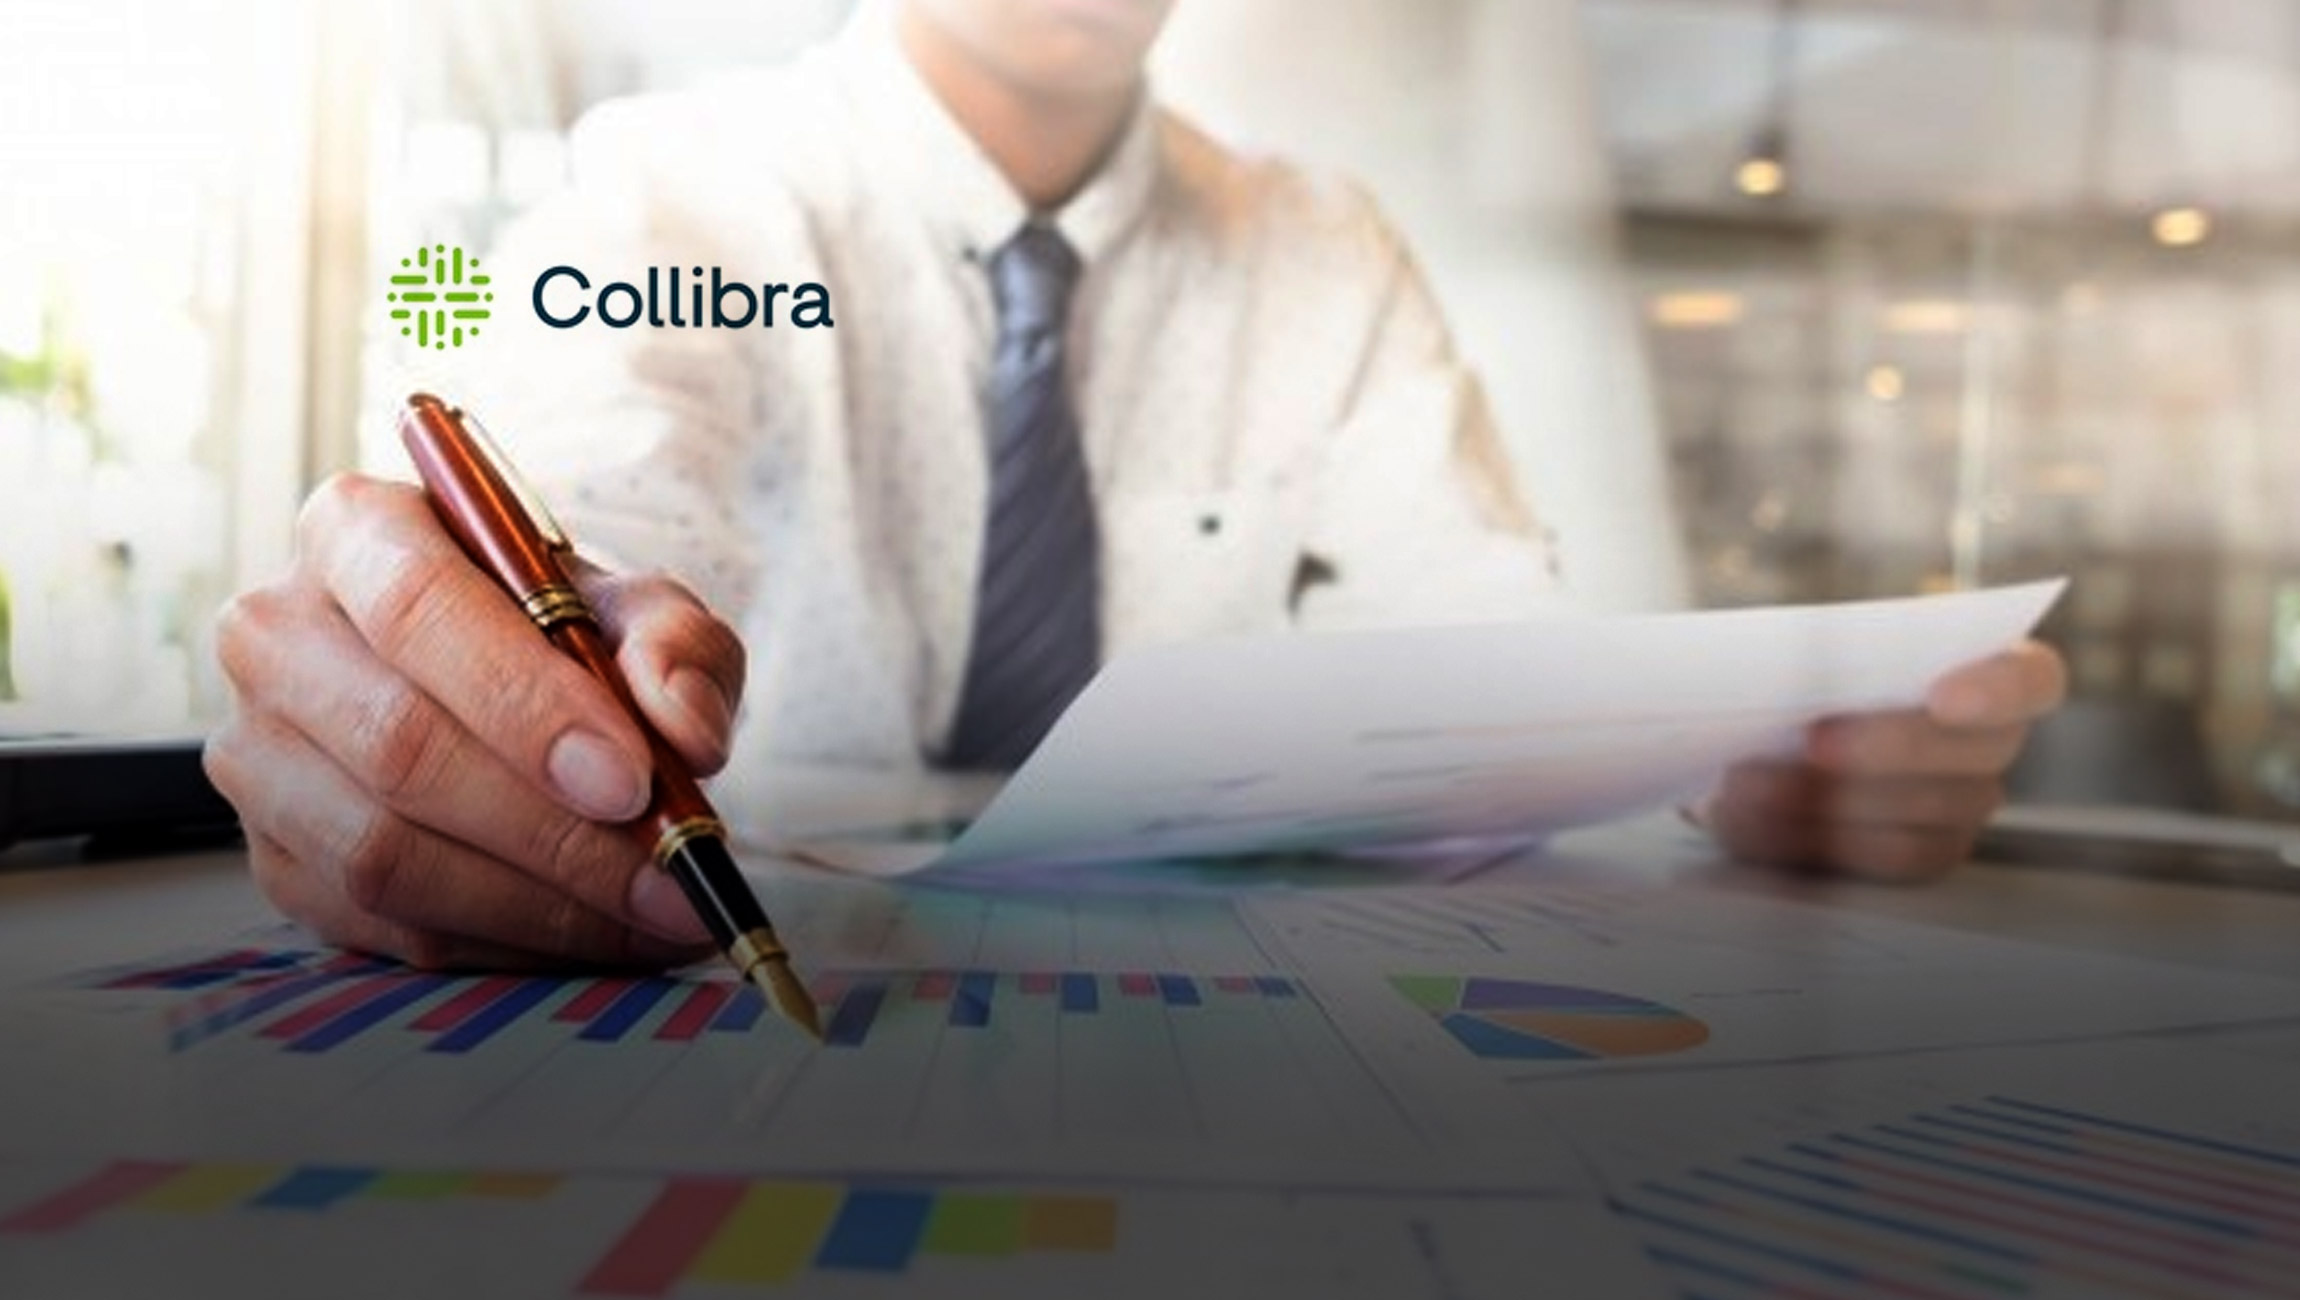 Collibra Launches as a Managed Service on the Google Cloud Platform